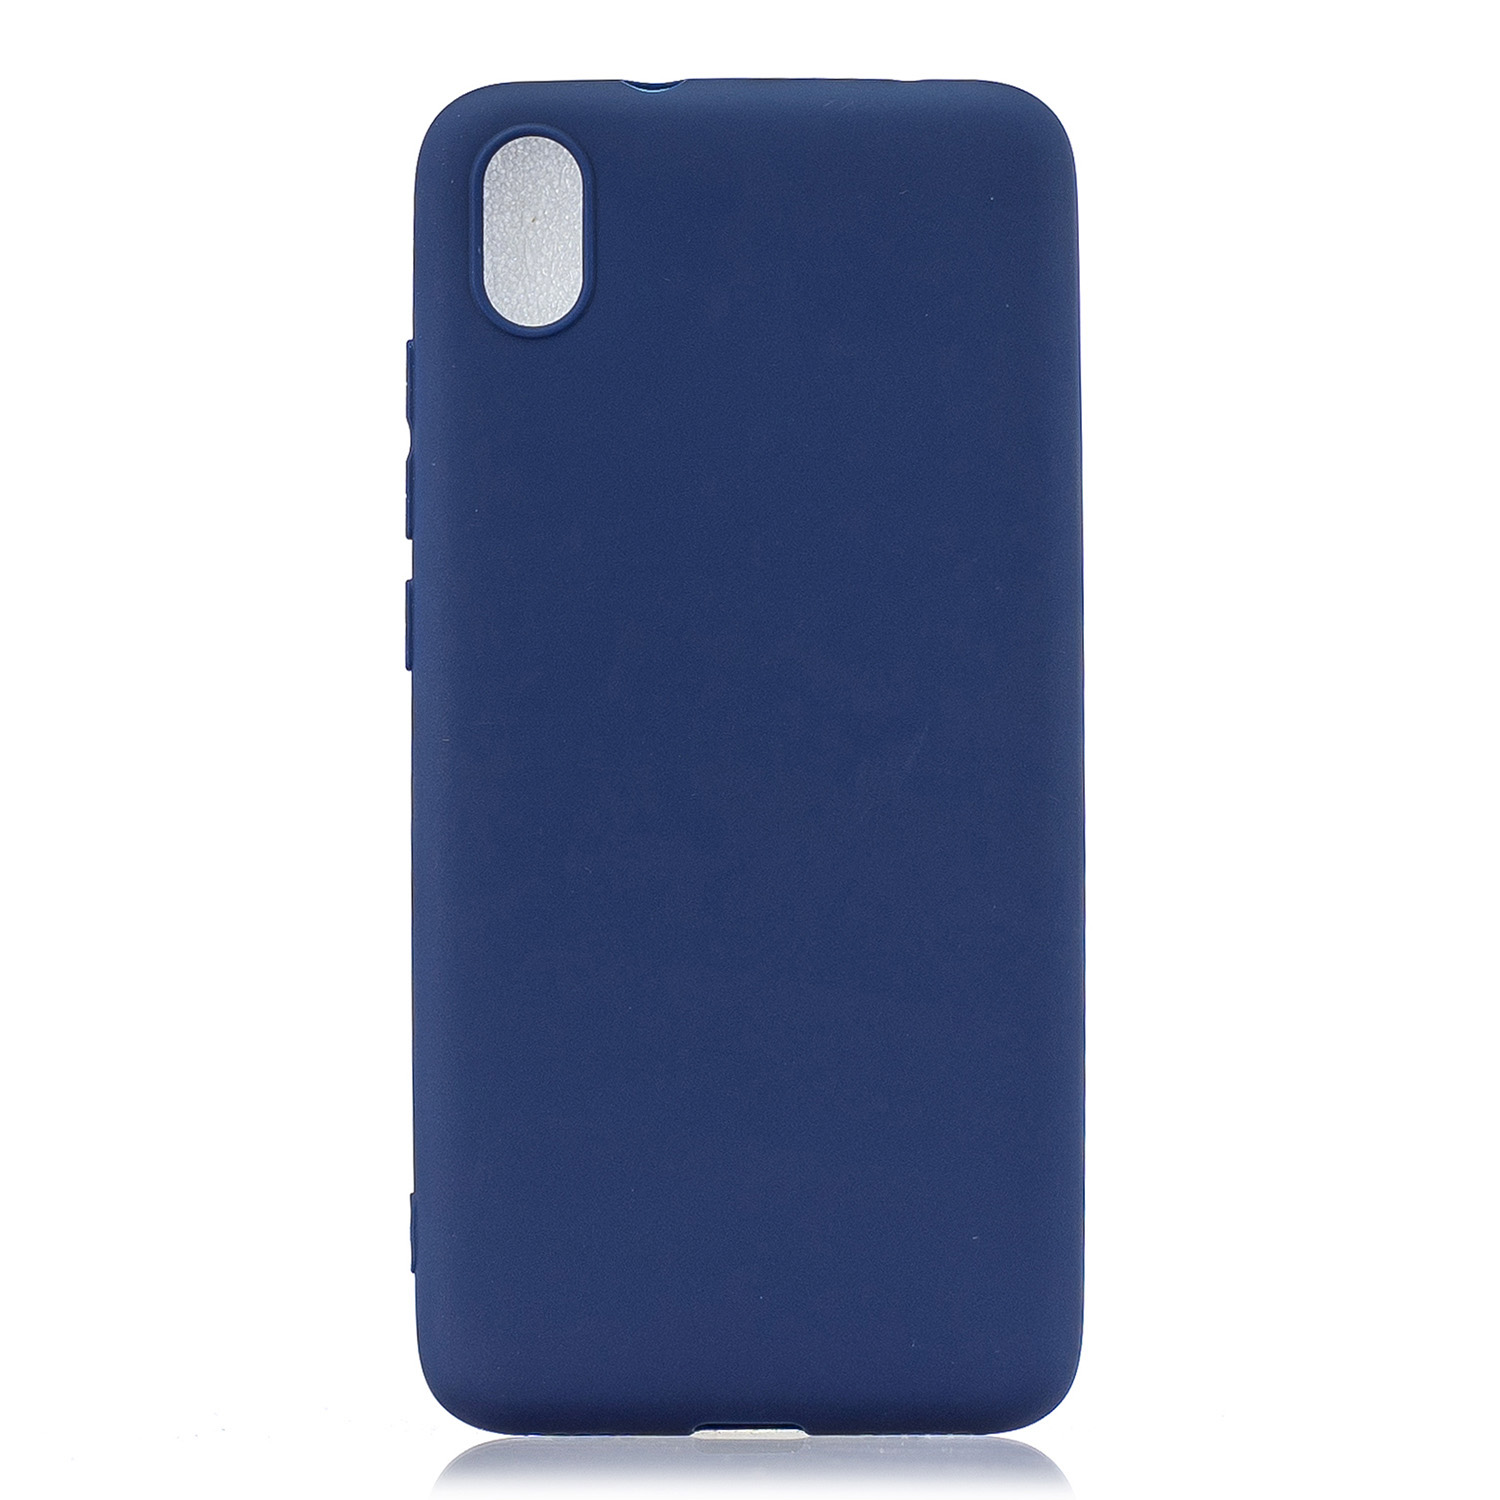 For Redmi 7A Lovely Candy Color Matte TPU Anti-scratch Non-slip Protective Cover Back Case Navy